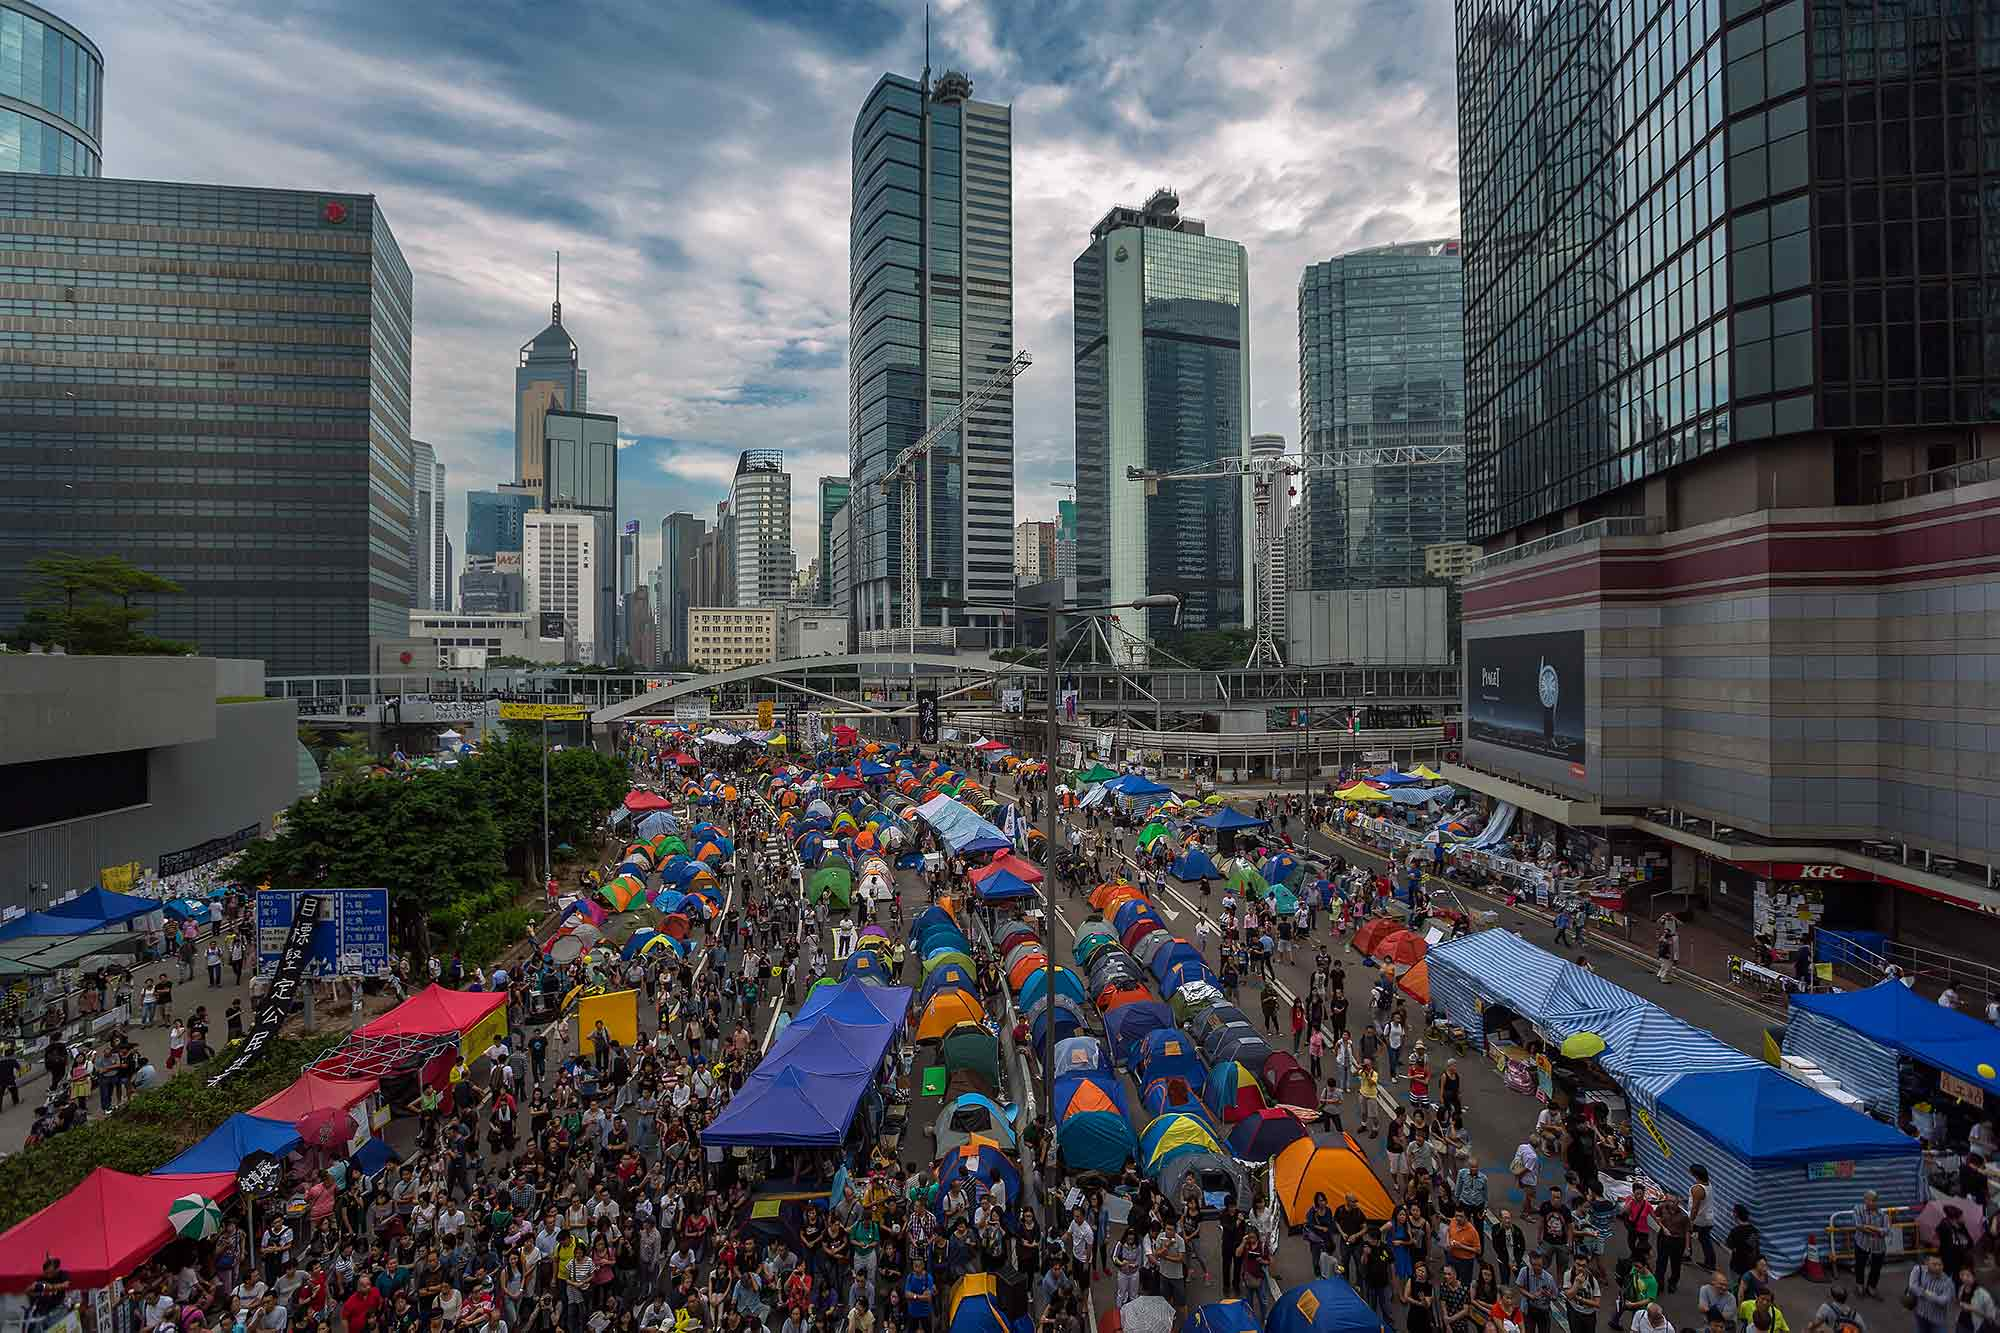 The Umbrella Movement in the Admiralty district, Hong Kong. © Ulli Maier & Nisa Maier